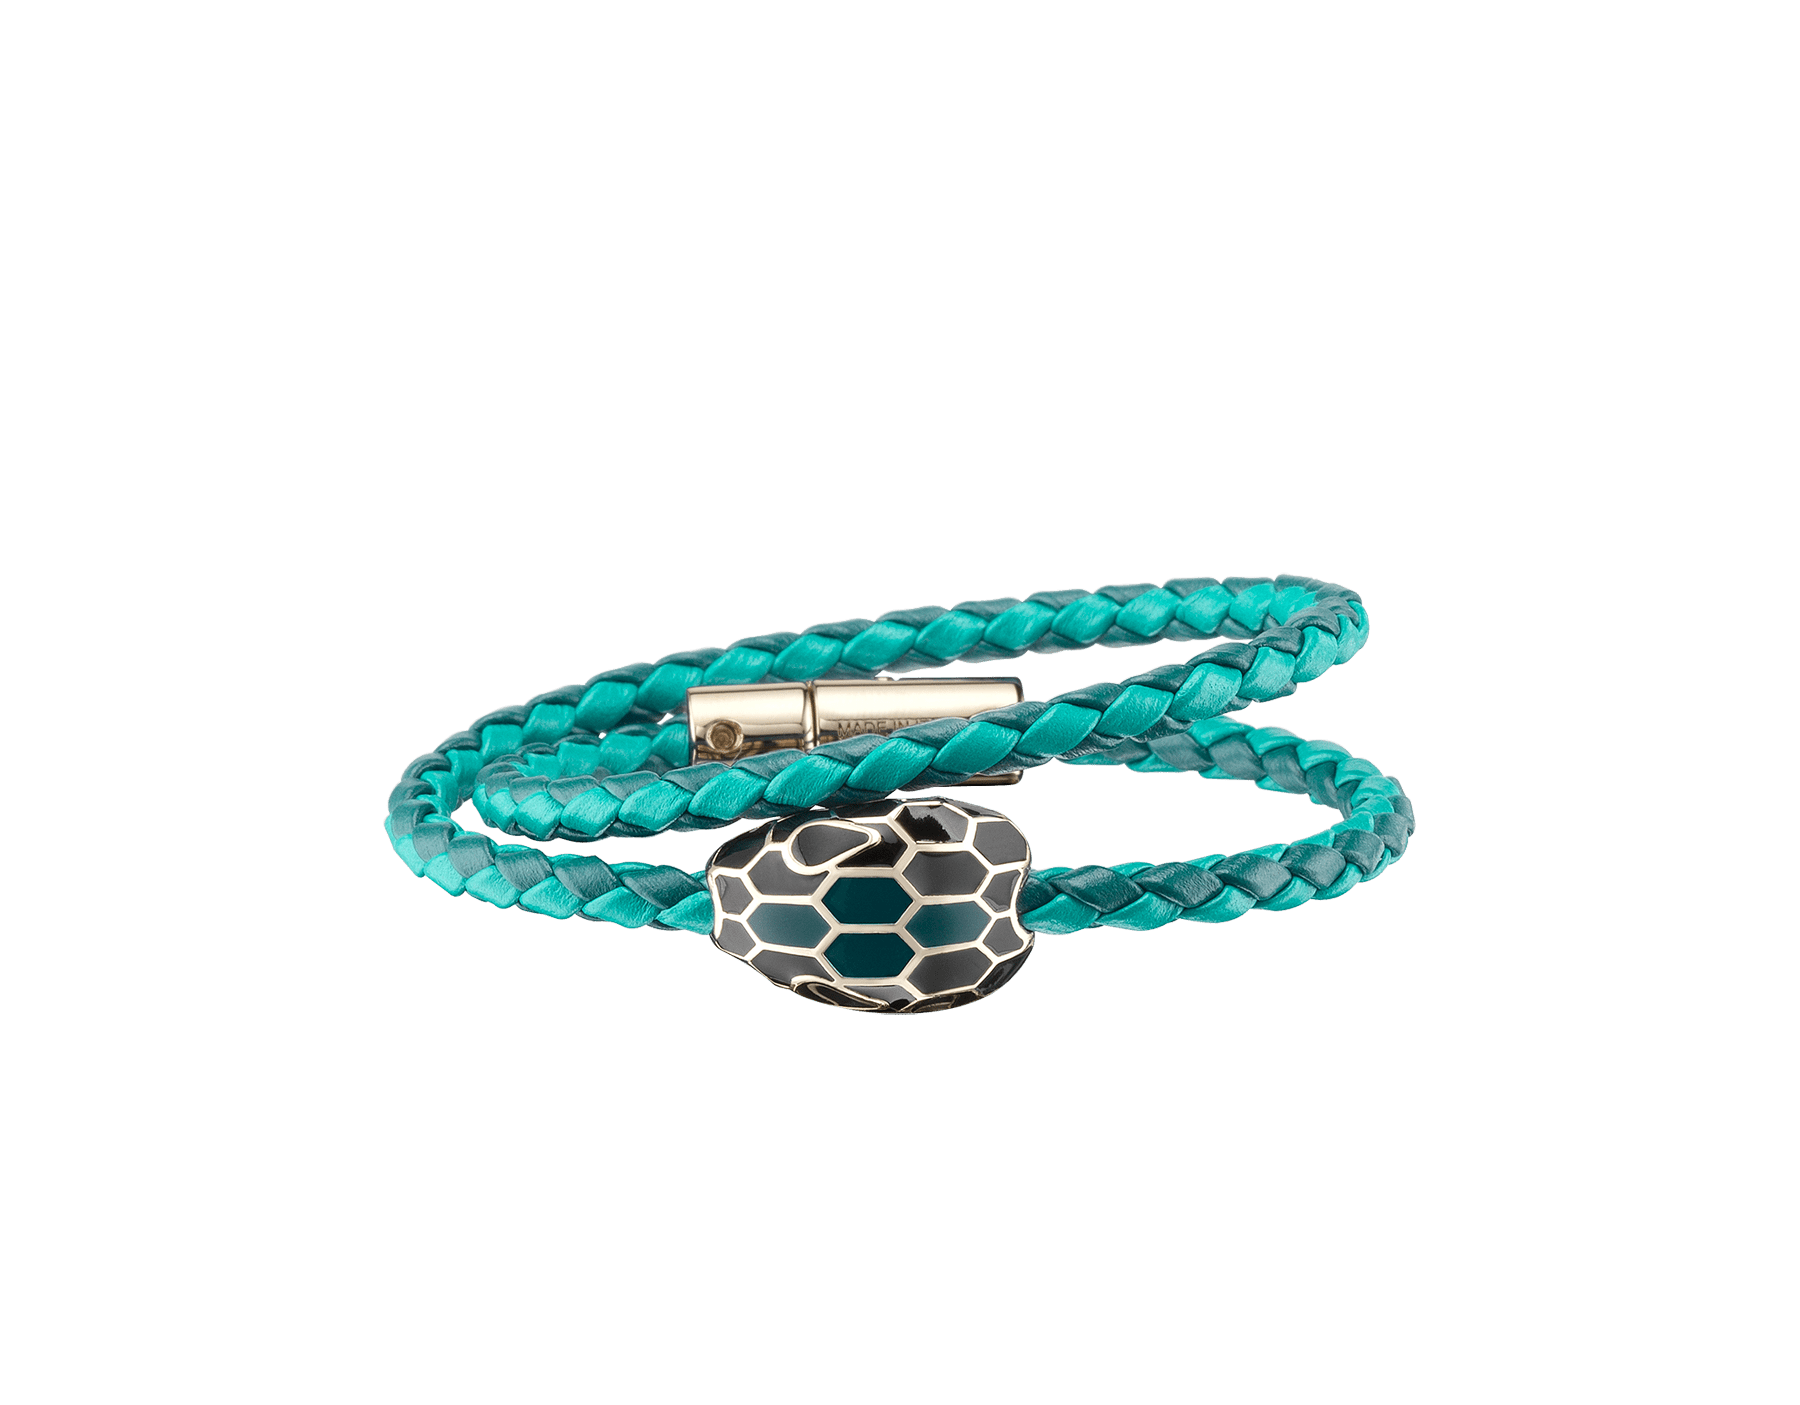 Serpenti Forevermulti-coiled braid bracelet in deep jade and tropical tourquoise woven calf leather with an iconic snakehead décor in black and deep jade enamel. SerpDoubleBraid-WCL-DJTT image 1